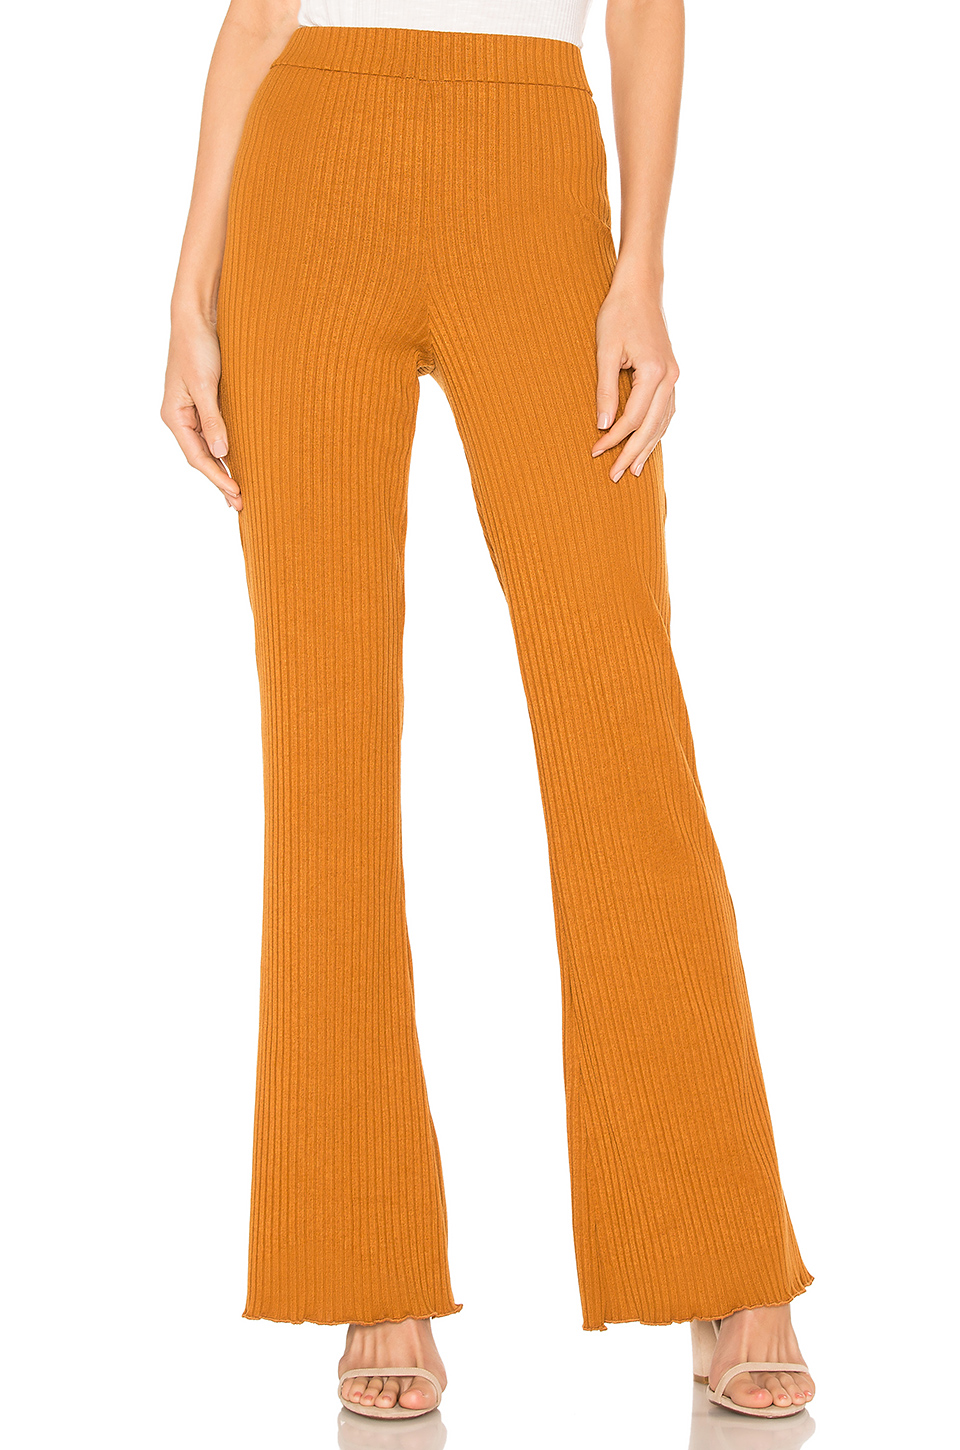 House Of Harlow 1960 X Revolve Anton Pant In Cognac. In Toffee